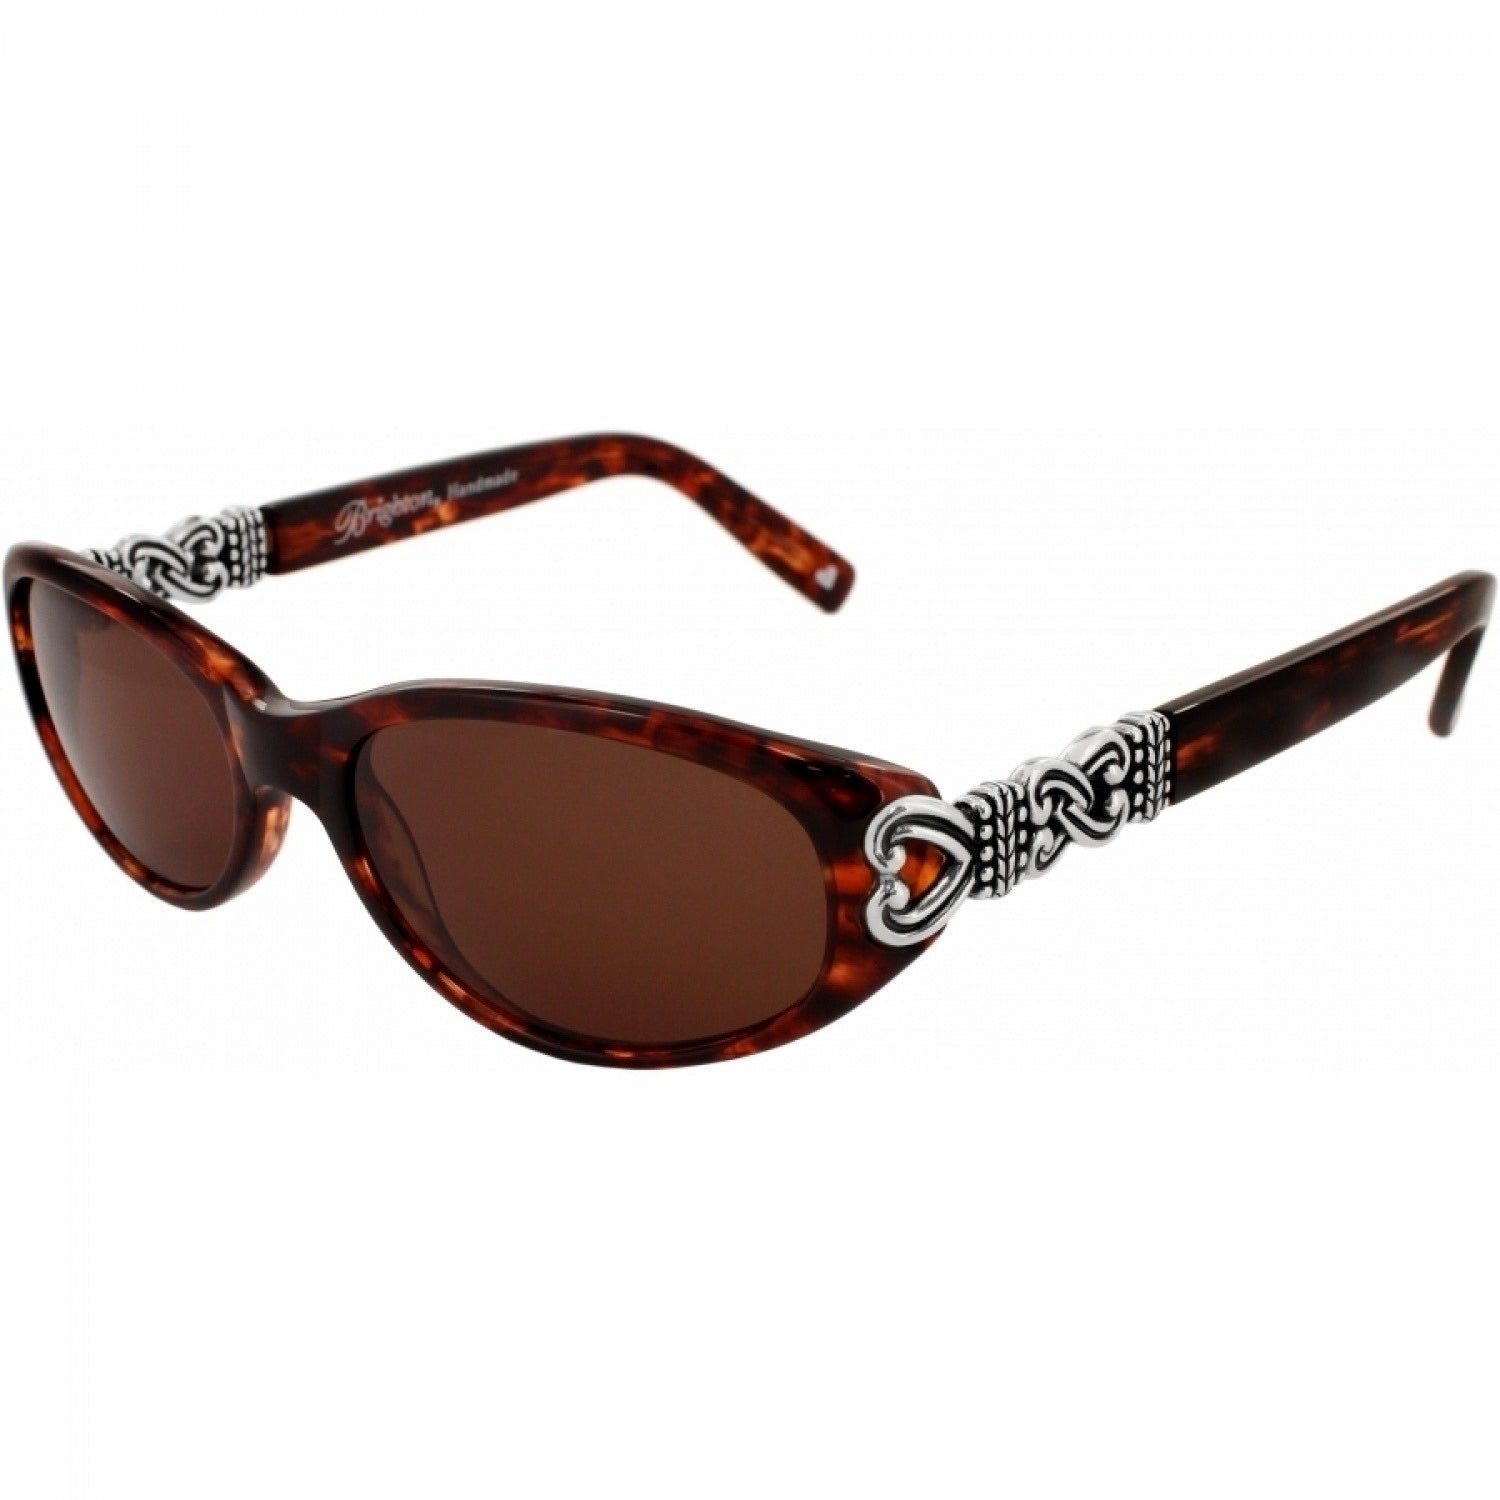 Brighton Sabrina Sunglasses